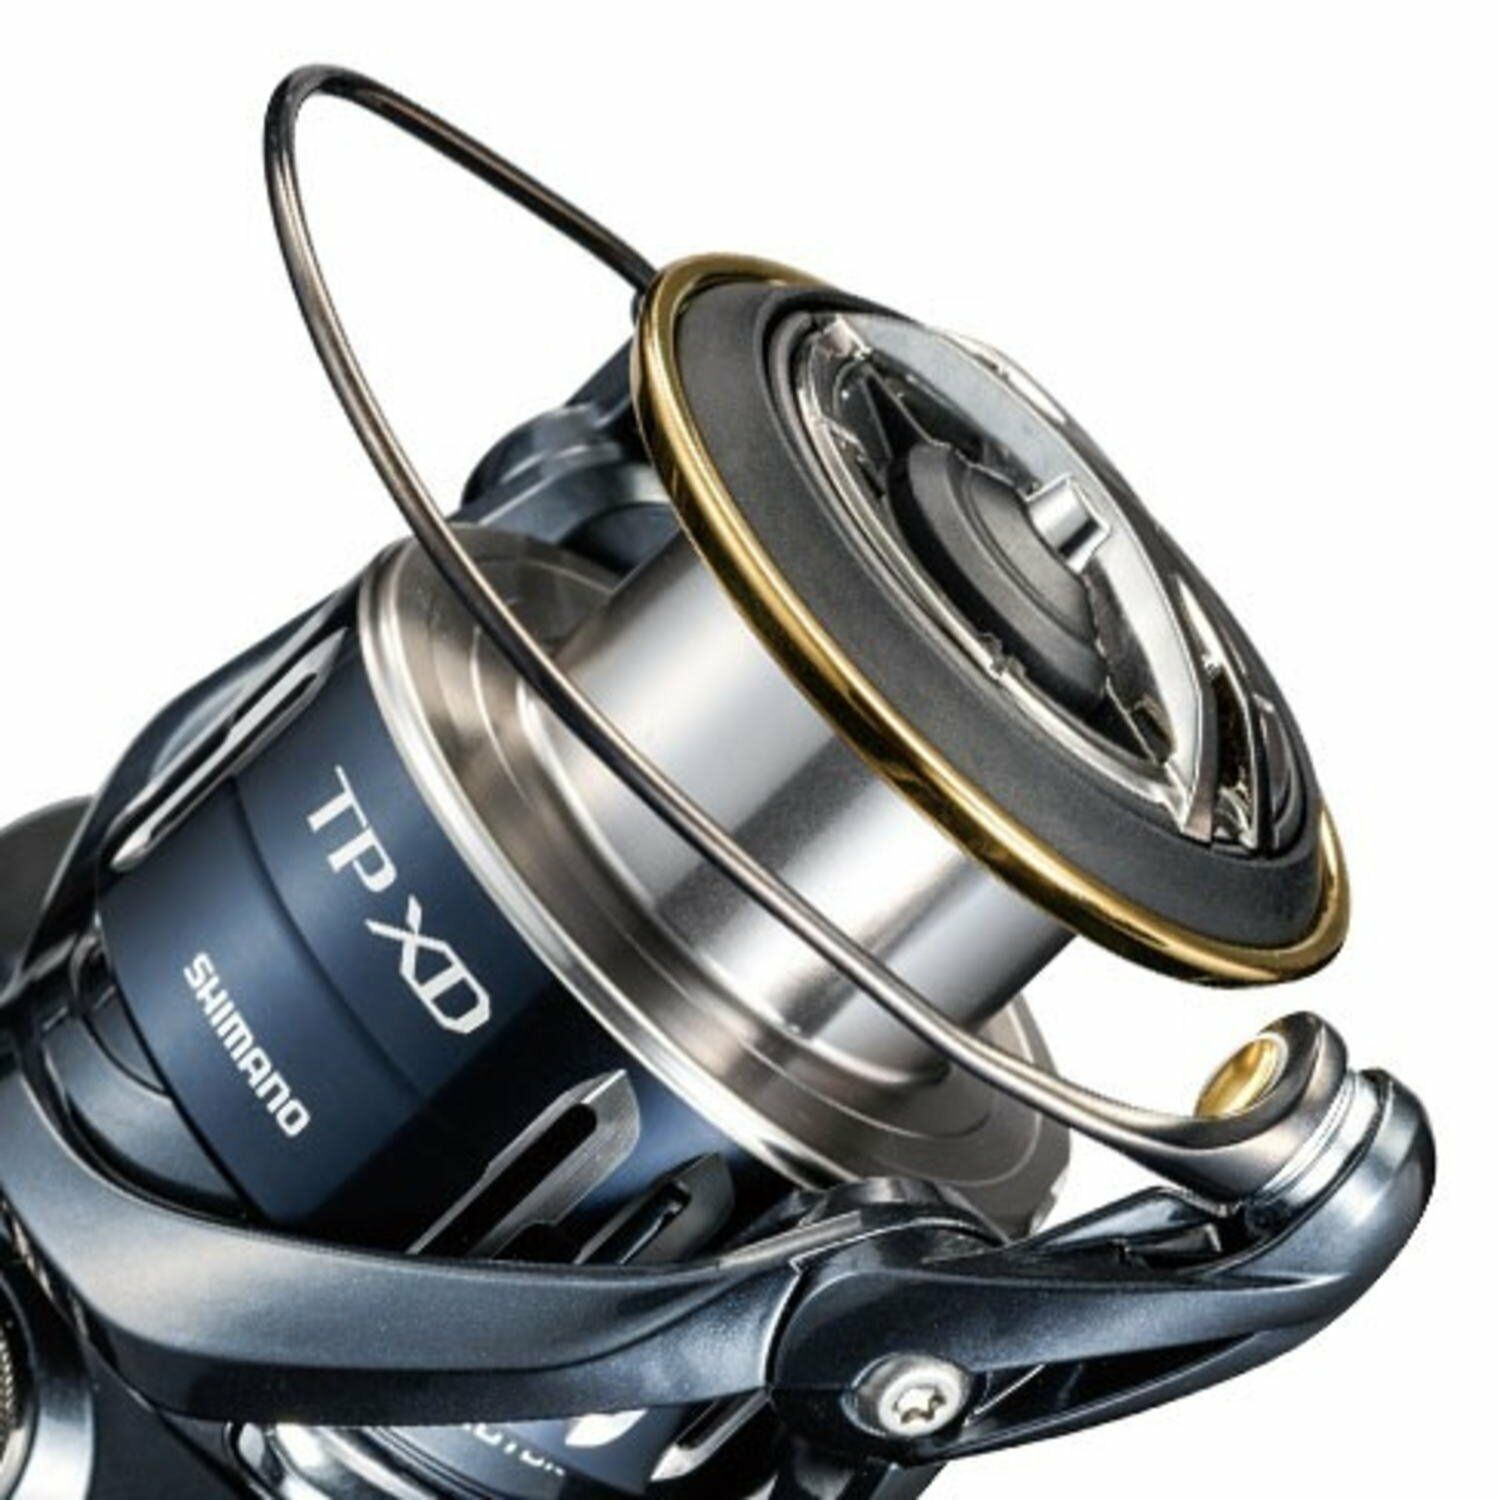 SHIMANO 17 TWIN POWER XD Reel C3000XG Spinning Reel XD New in Box 379139